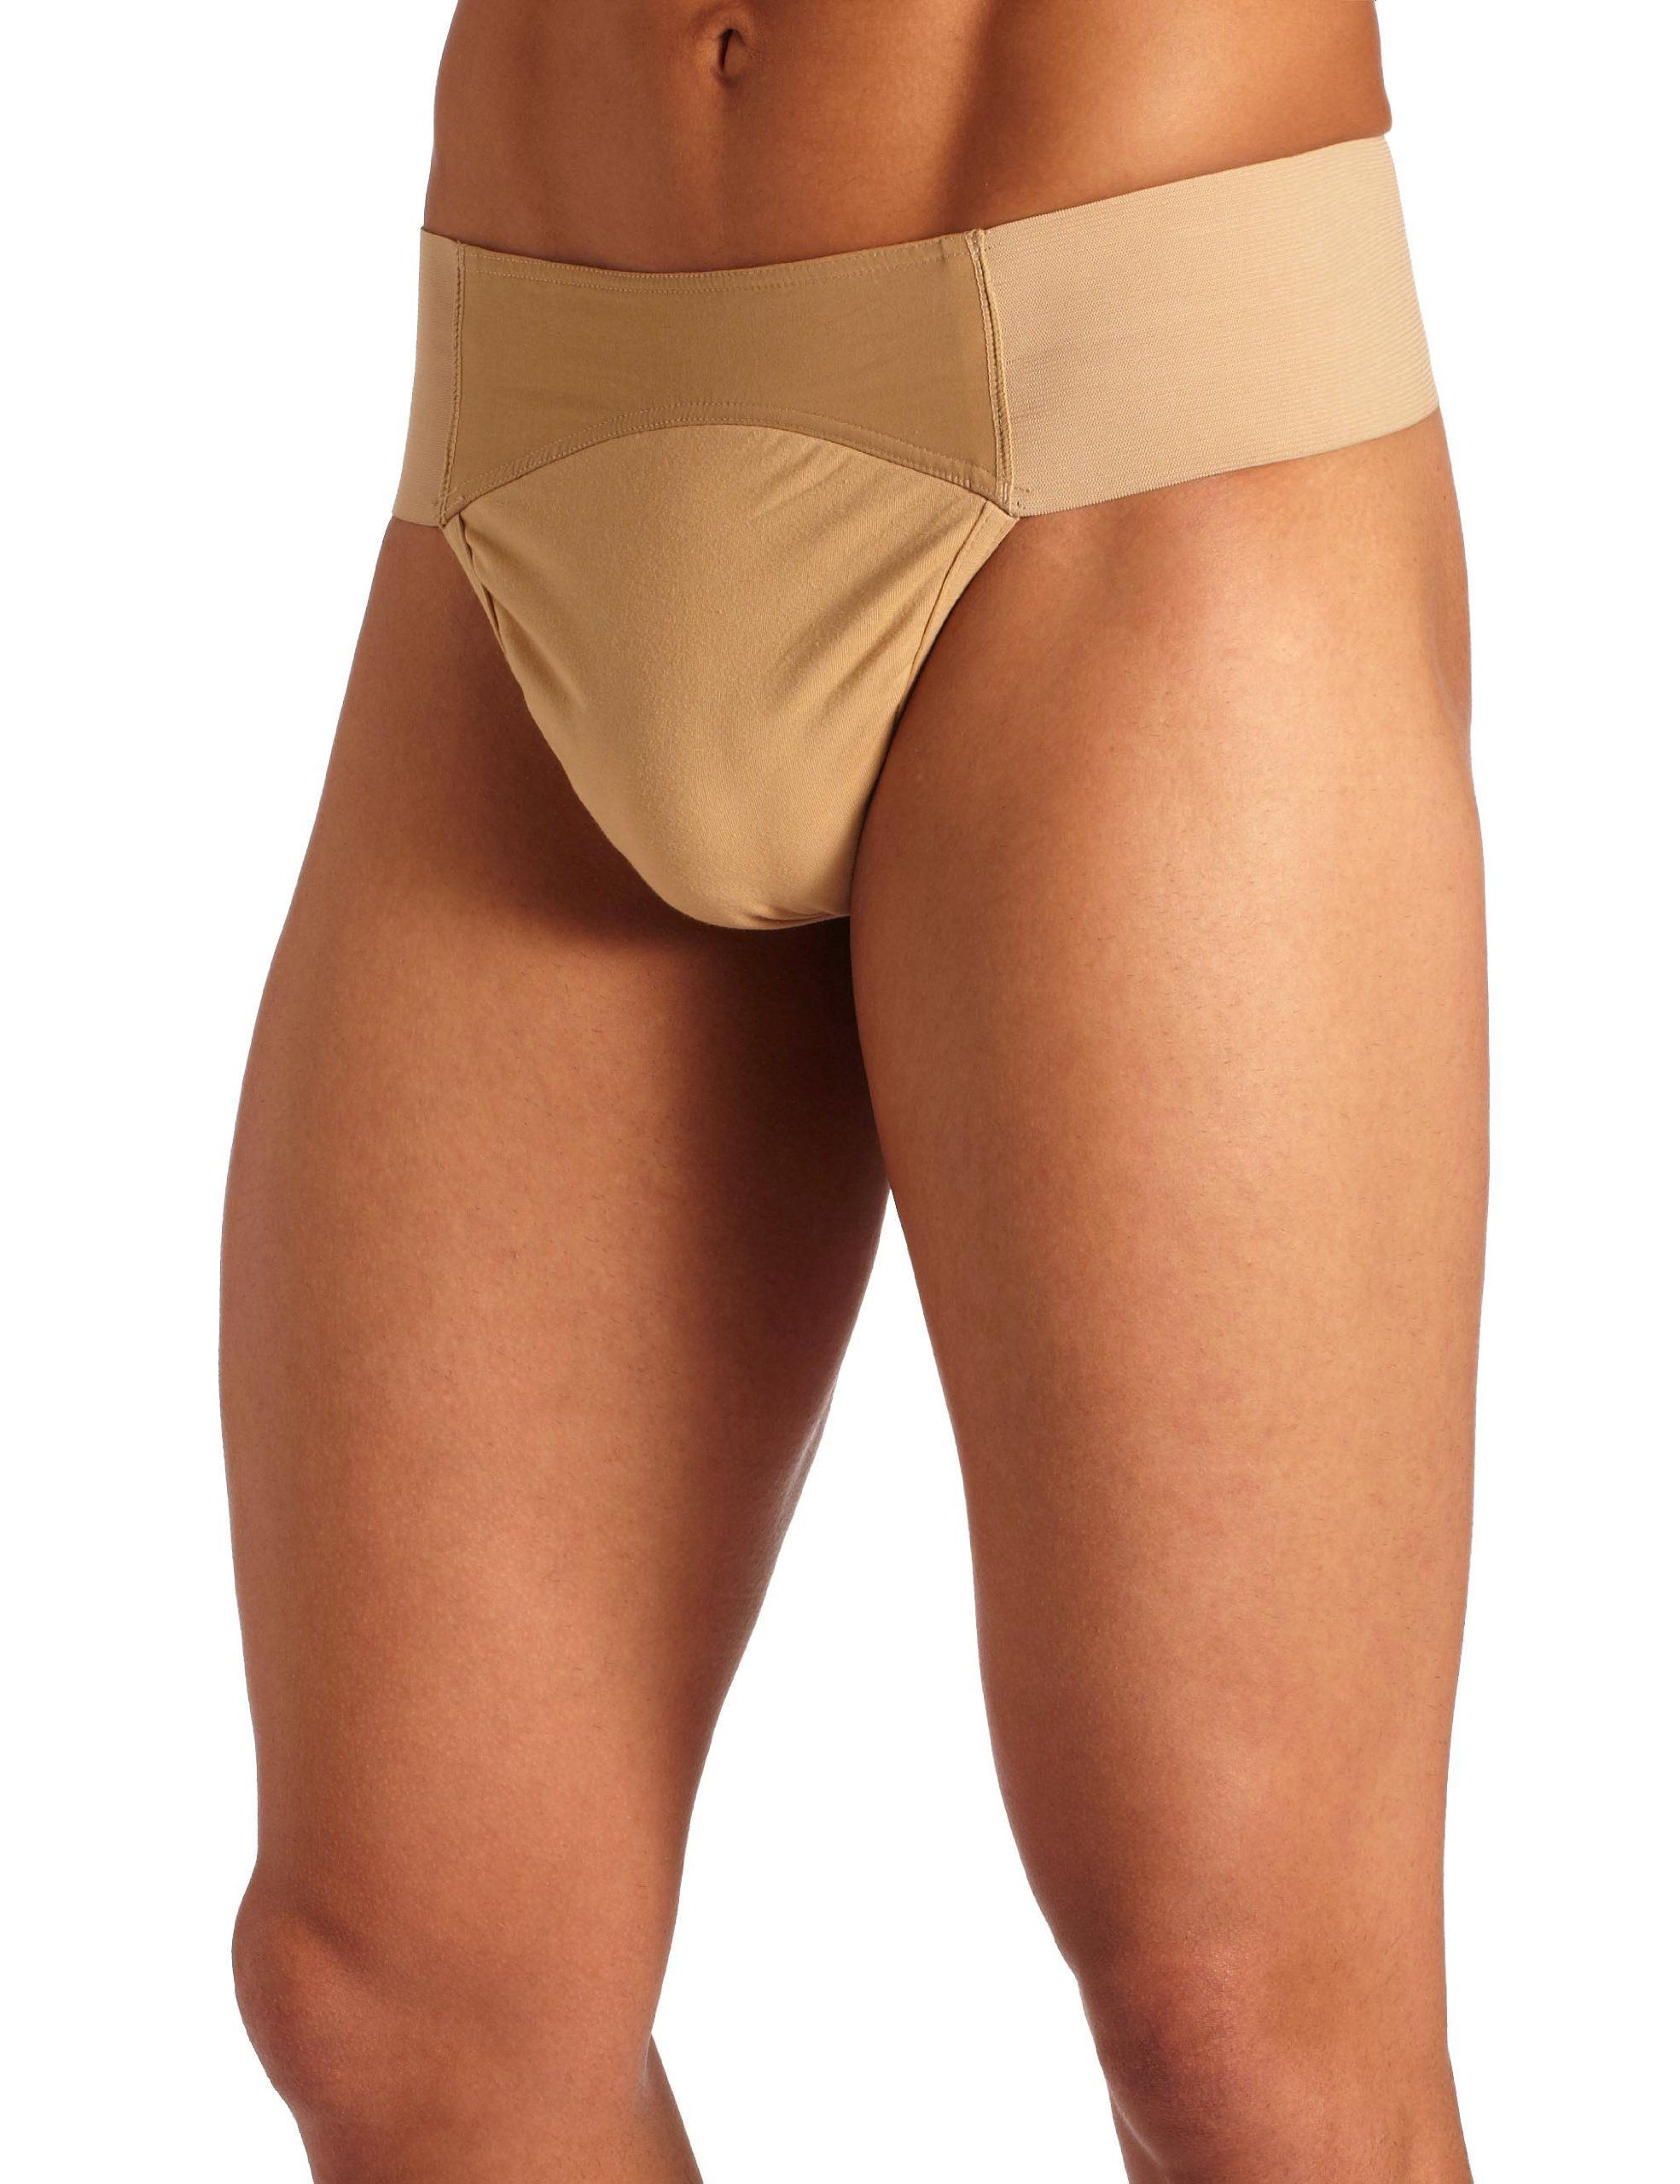 Capezio Men's Quilted Cotton Panel Thong Dance Belt, Natural, Medium